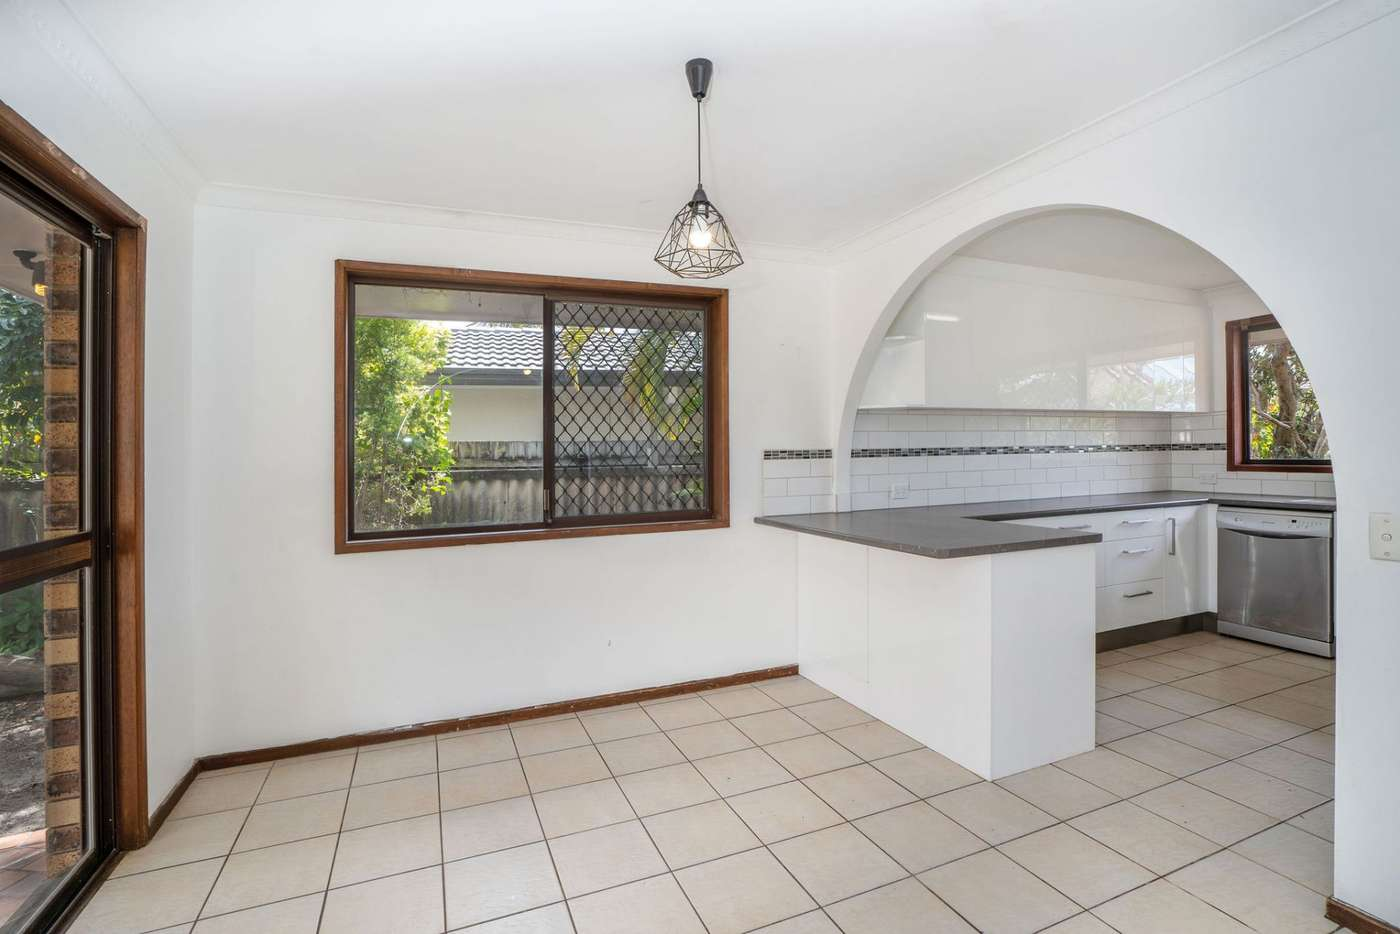 Sixth view of Homely house listing, 128 Burleigh Street, Burleigh Waters QLD 4220